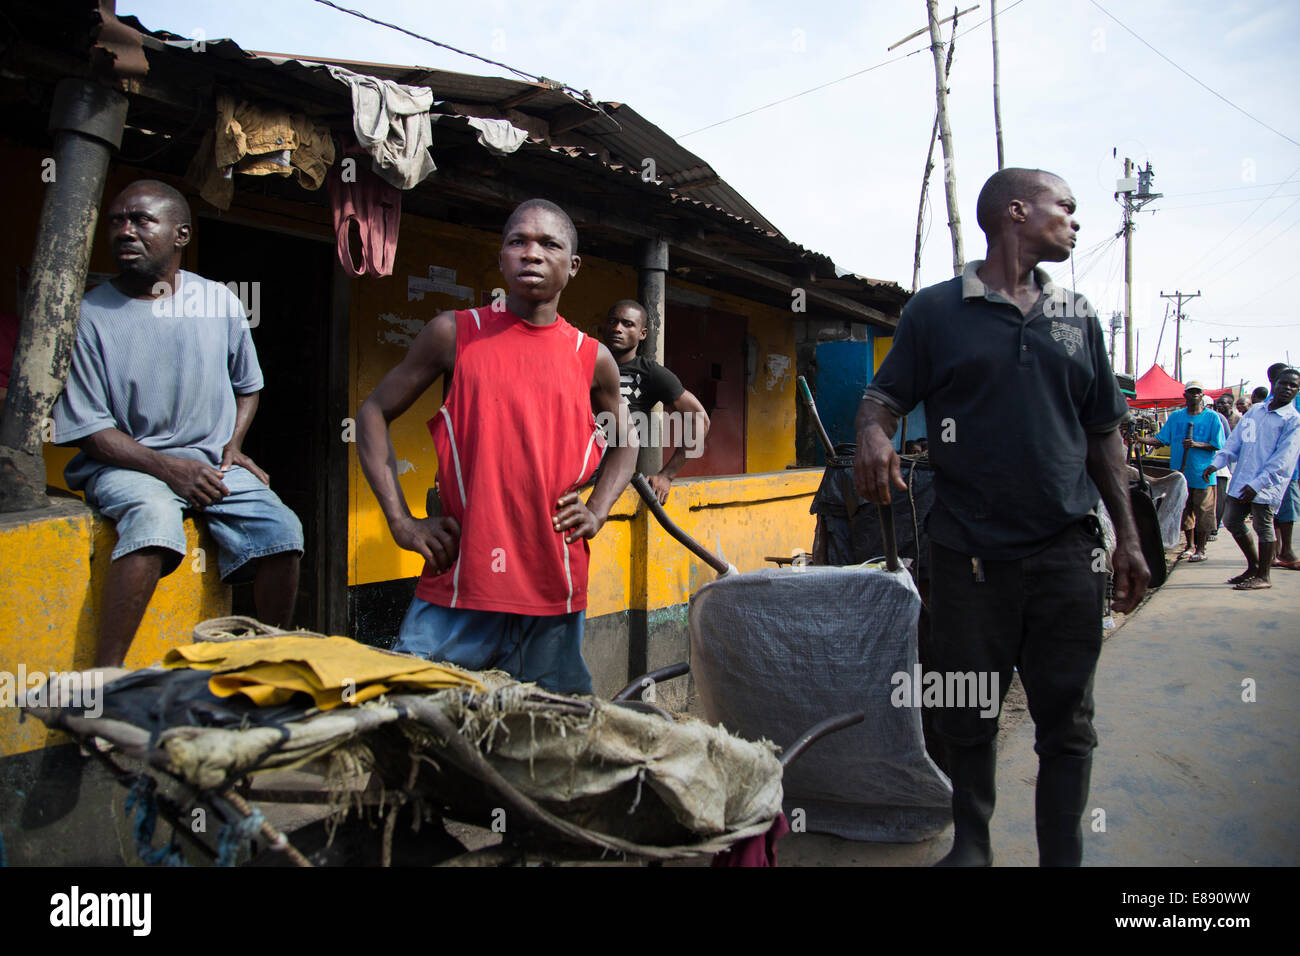 Residents of West Point wait outside a holding clinic. West Point is a district of Monrovia Liberia quarantined - Stock Image